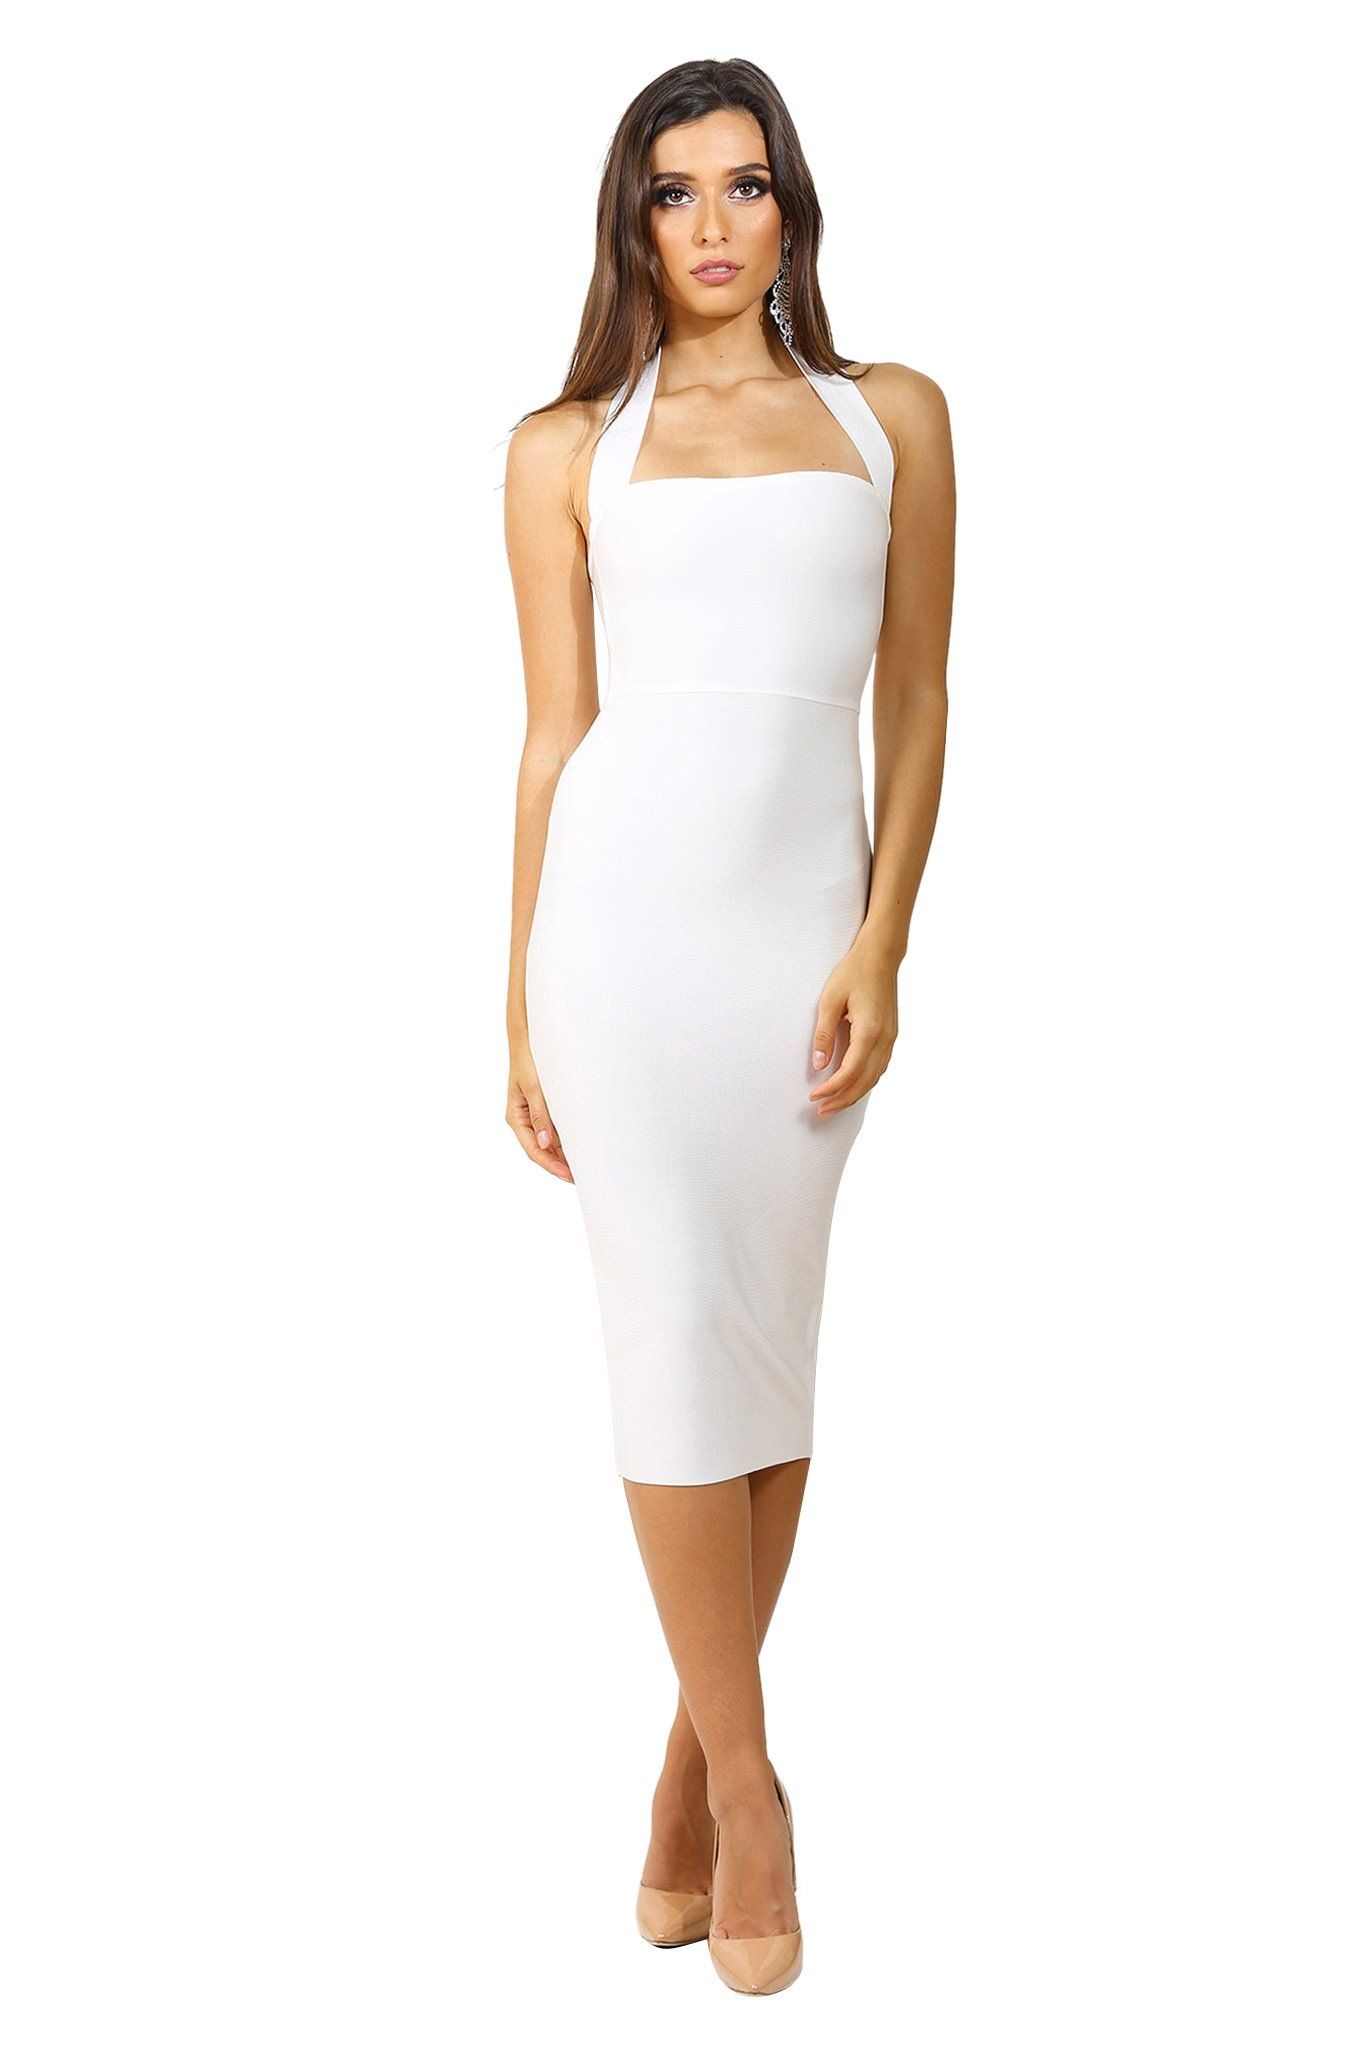 White sleeveless midi length bandage dress with wide halter-neck straps and straight open neckline